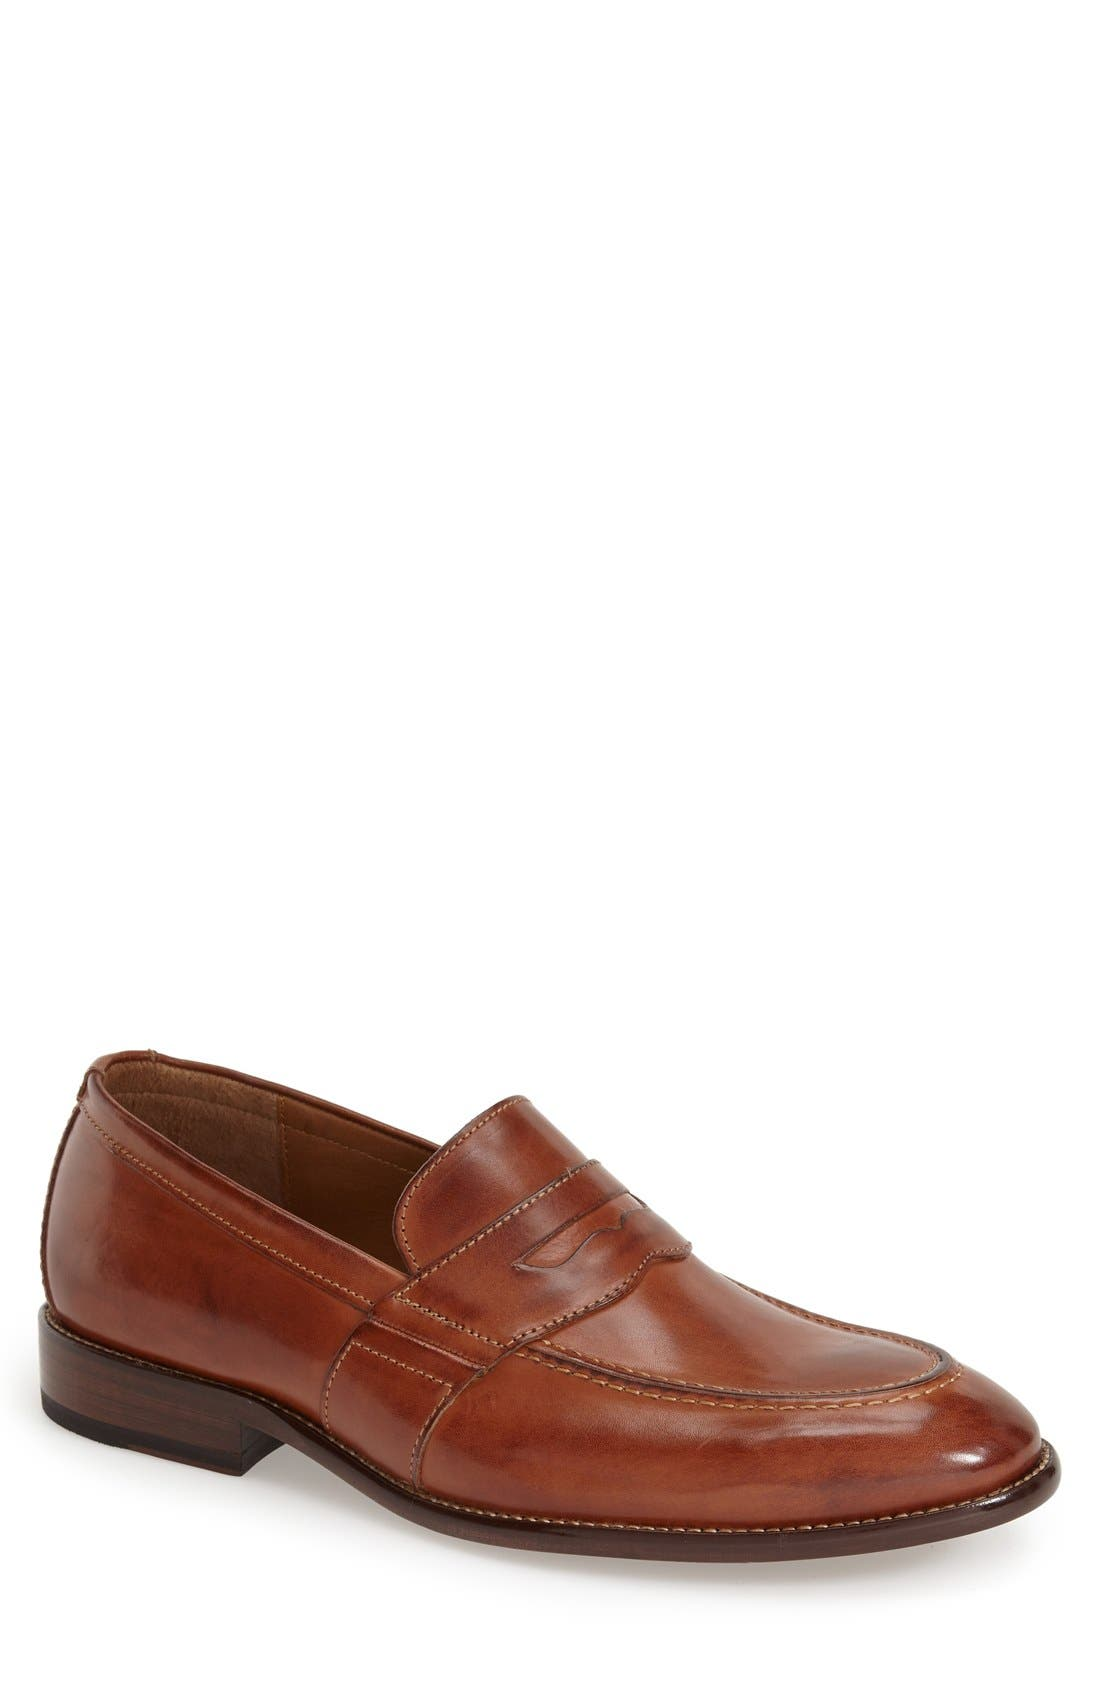 J & M 1850 'Allred' Penny Loafer,                         Main,                         color, 240